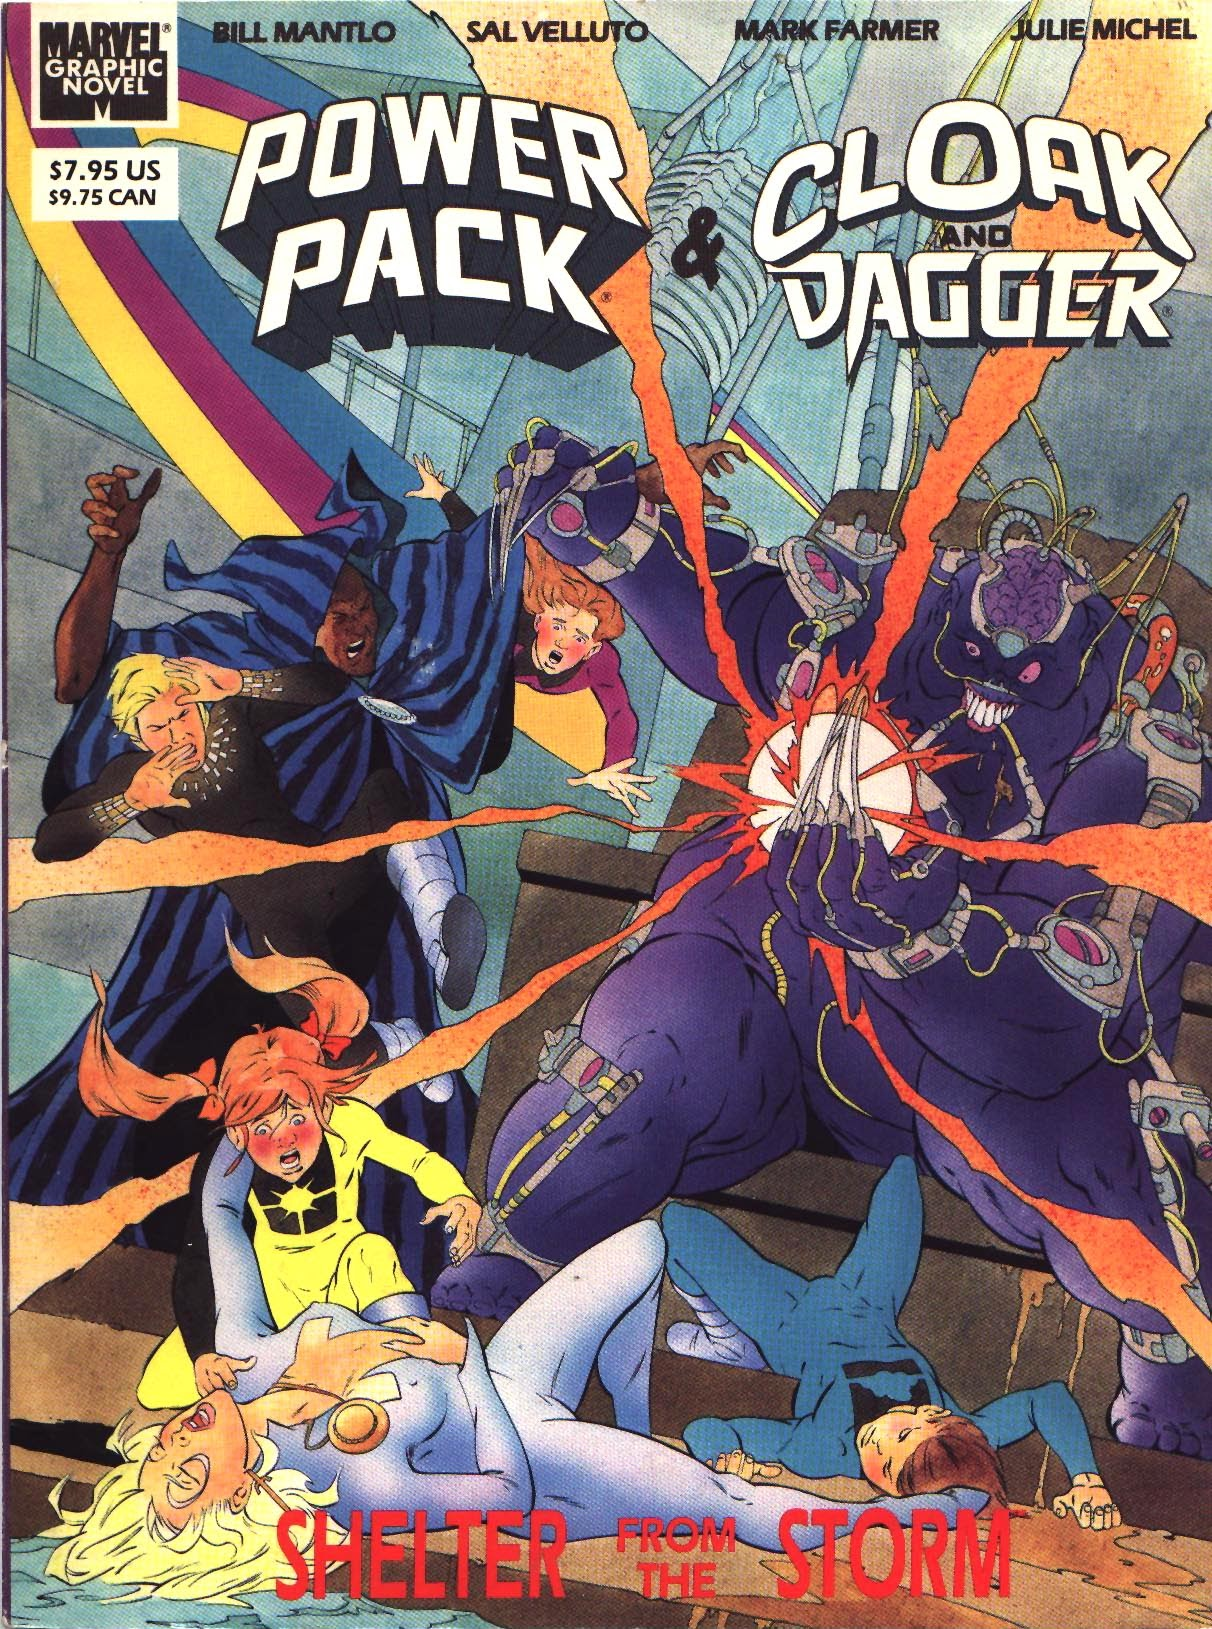 Marvel Graphic Novel: Cloak and Dagger and Power Pack: Shelter From The Storm TPB Page 1